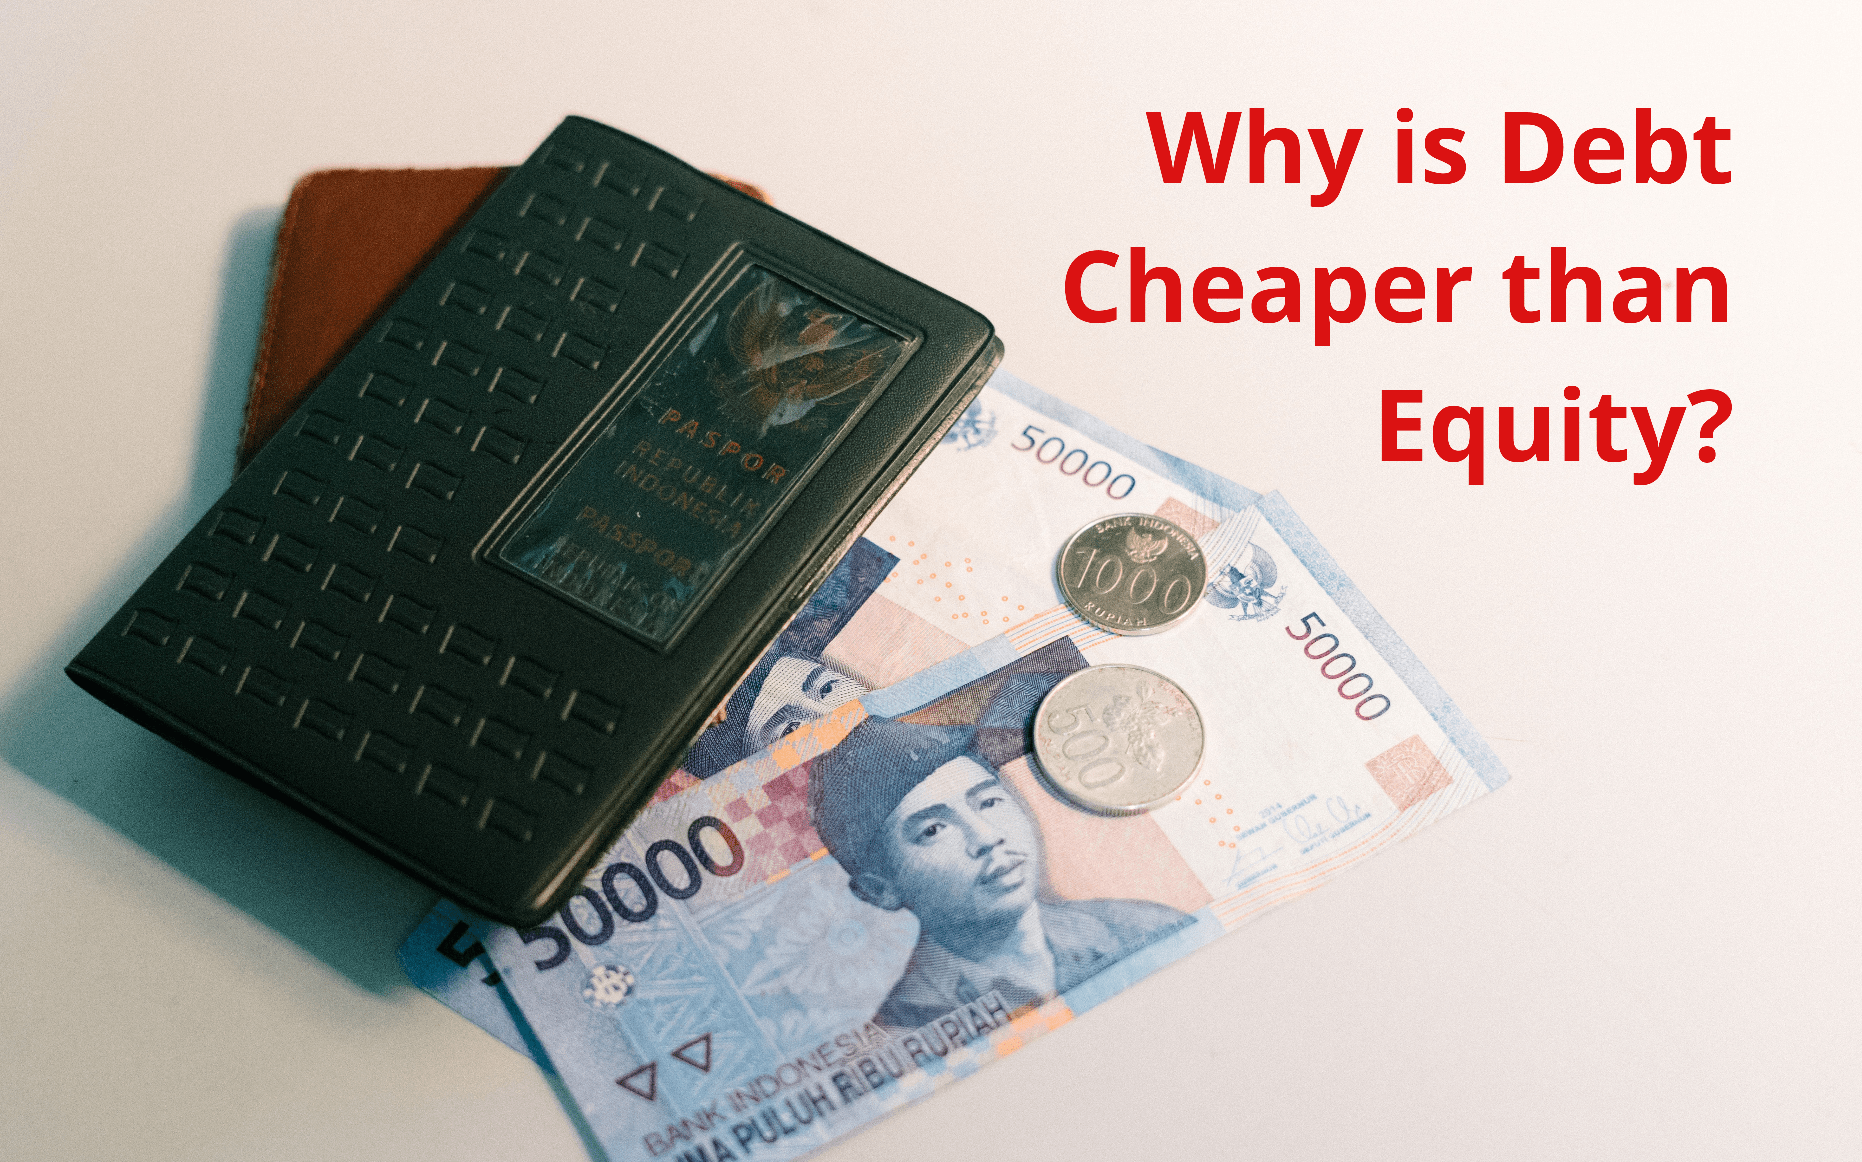 Why is debt cheaper than equity, Why is debt cheaper than equity wso, Reasons why debt is cheaper than equity, Why is cost of debt cheaper than equity, How is debt cheaper than equity